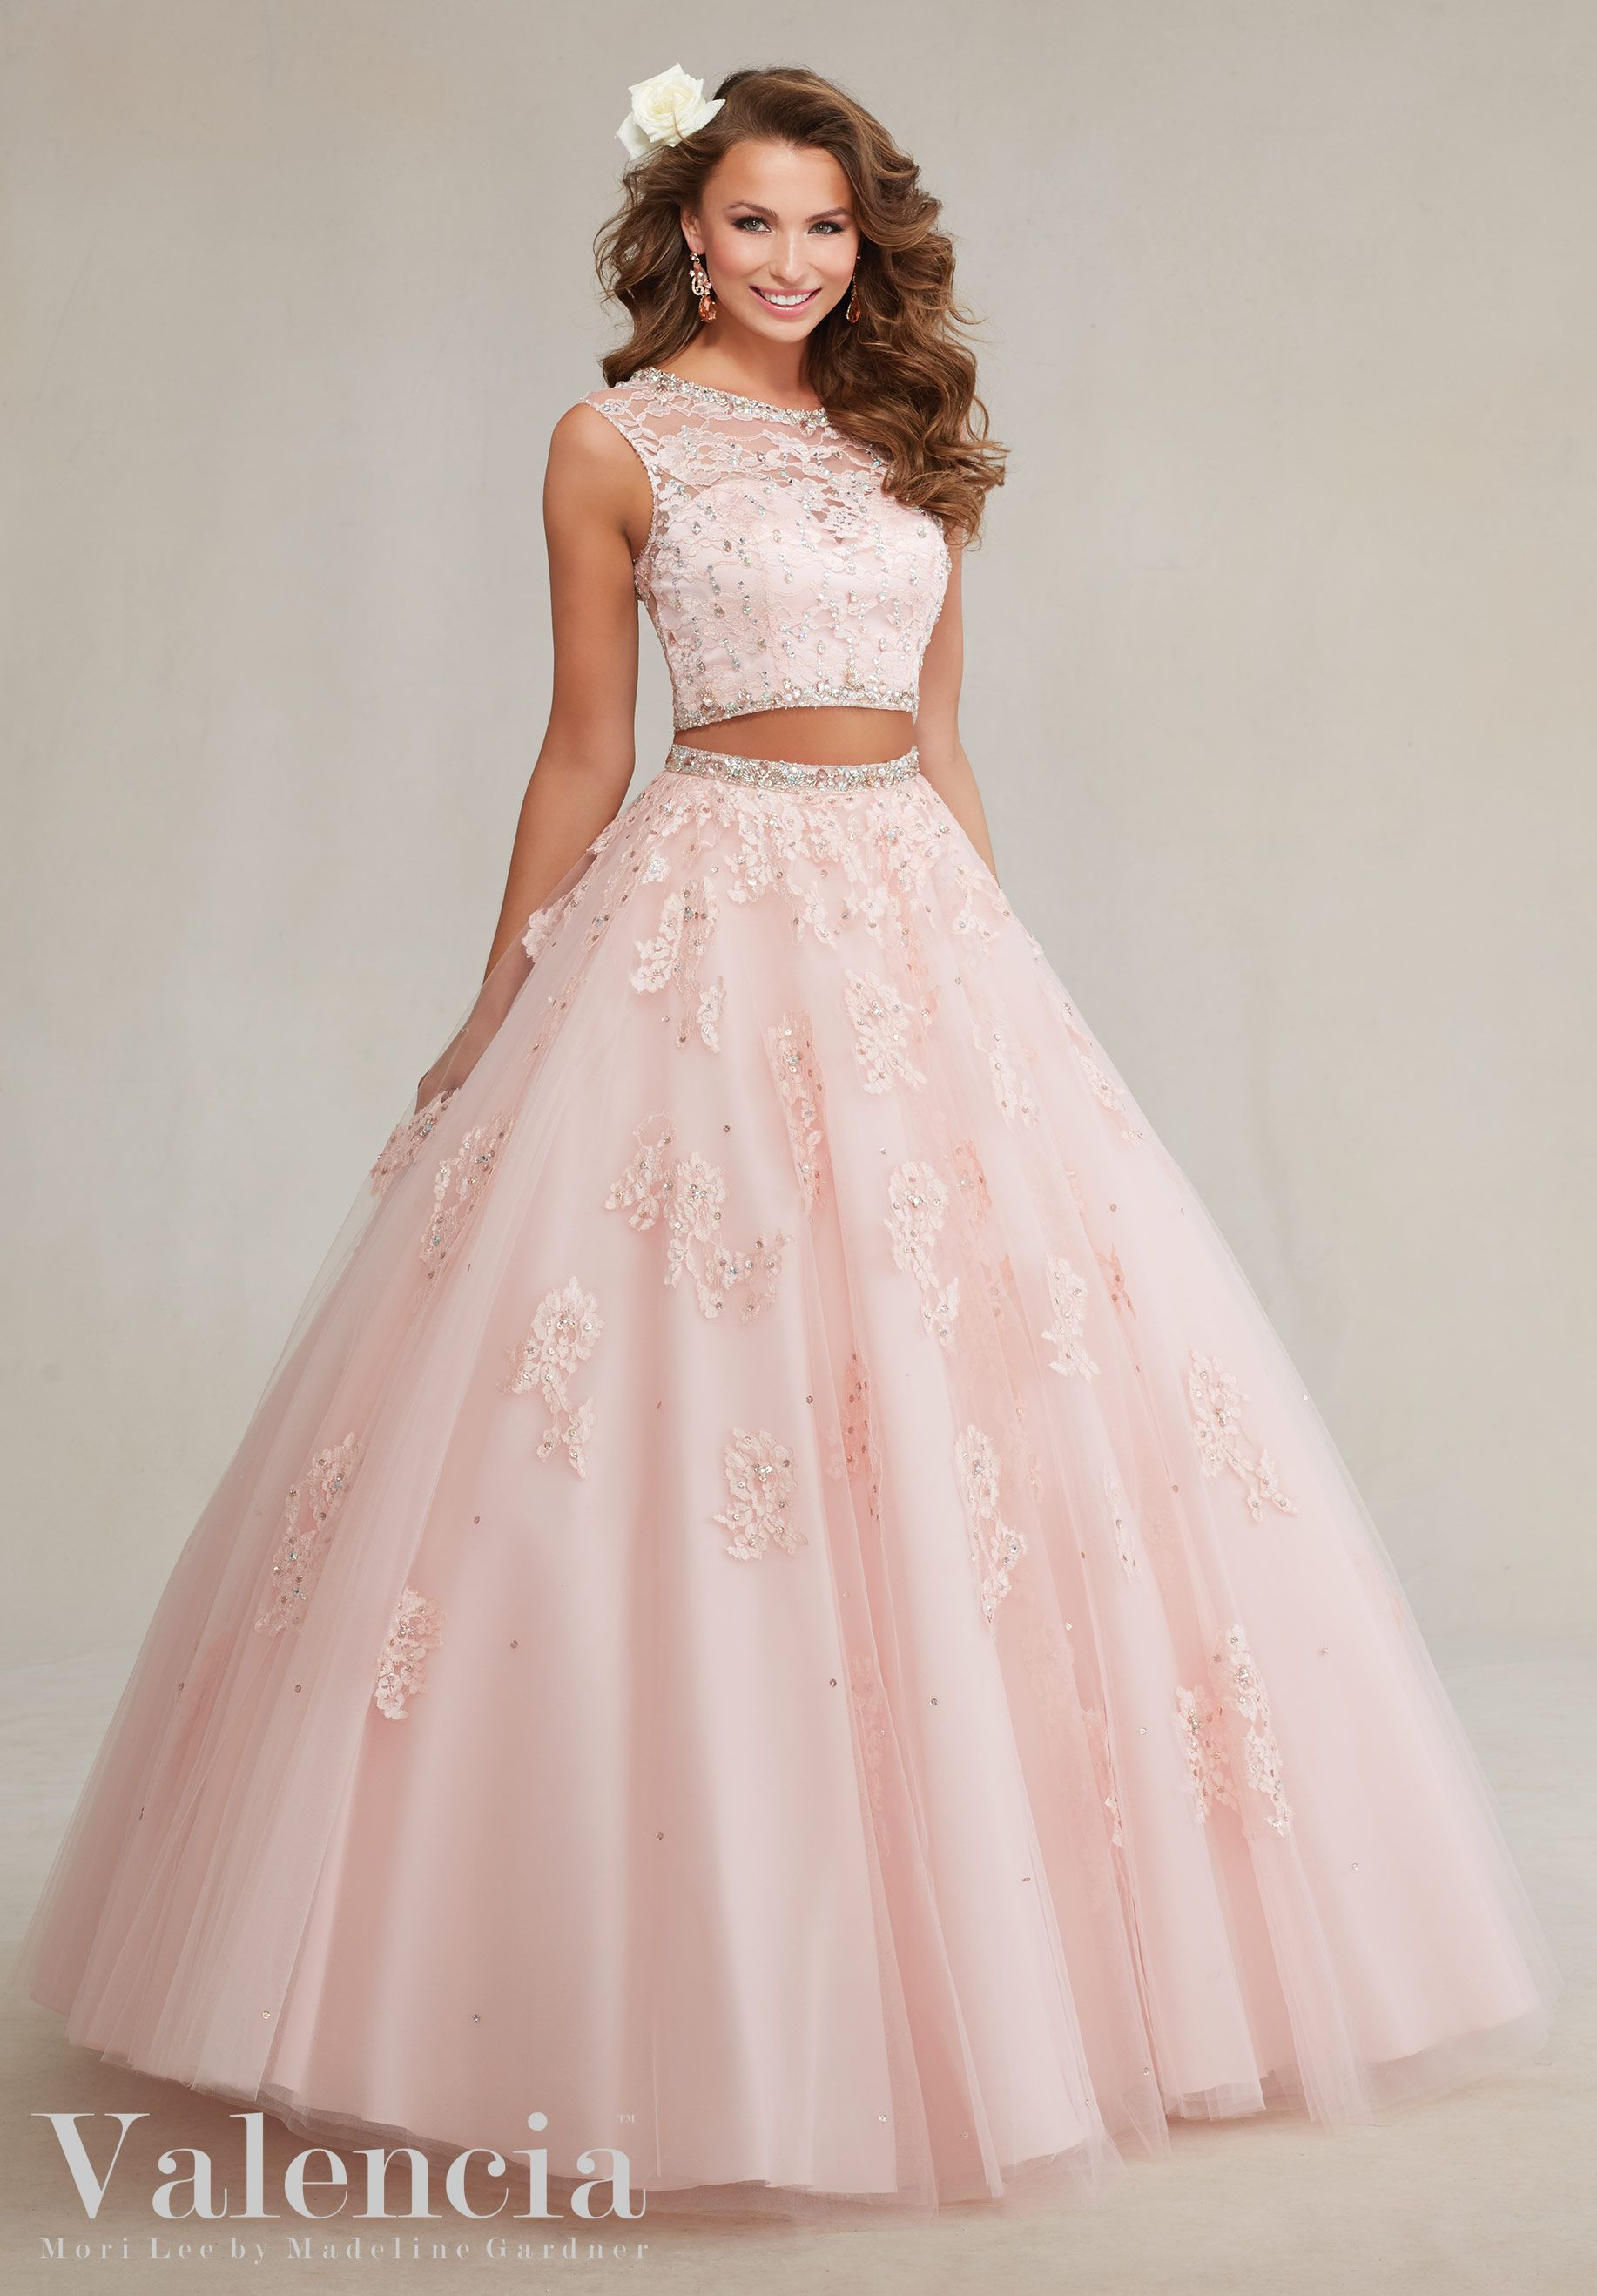 Twopiece tulle with beaded lace appliqués quinceañera dress